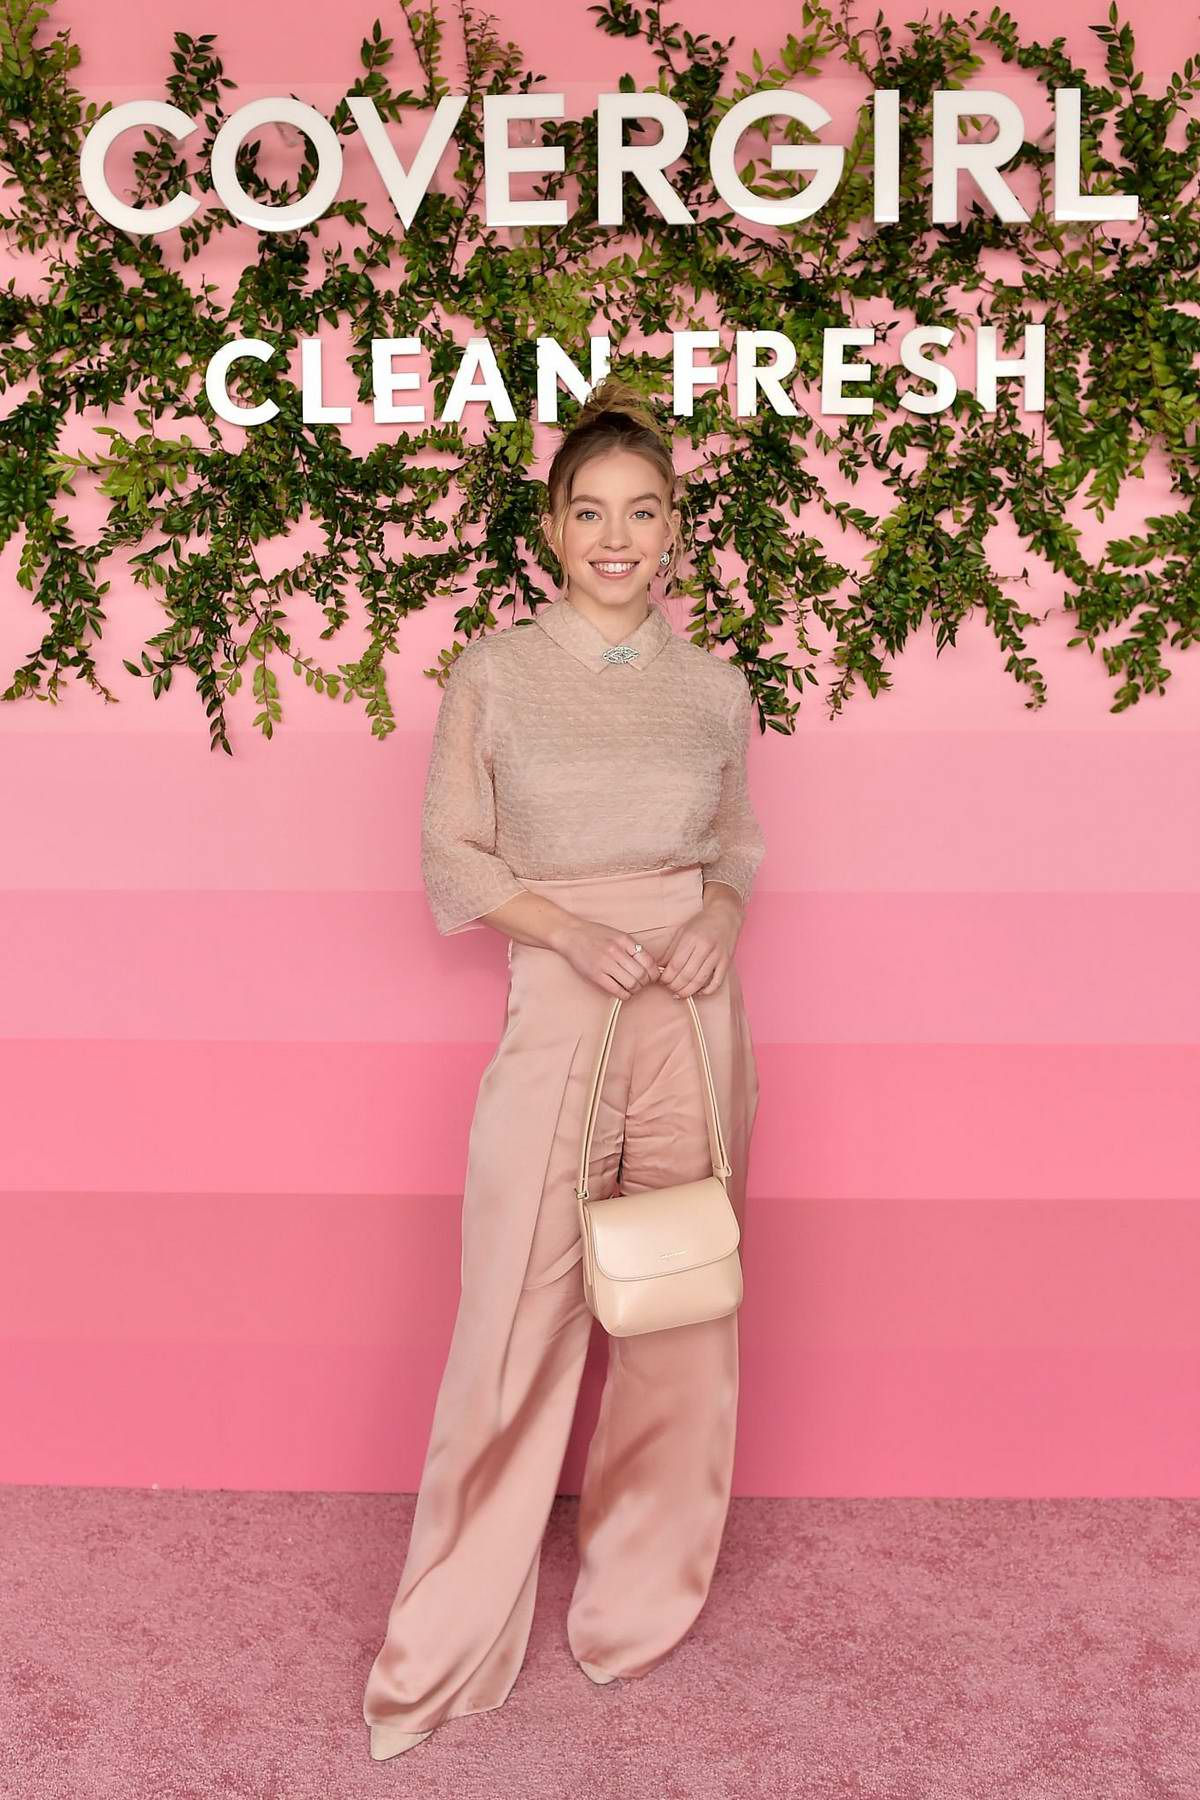 Sydney Sweeney attends Covergirl Clean Fresh Launch Party in Los Angeles